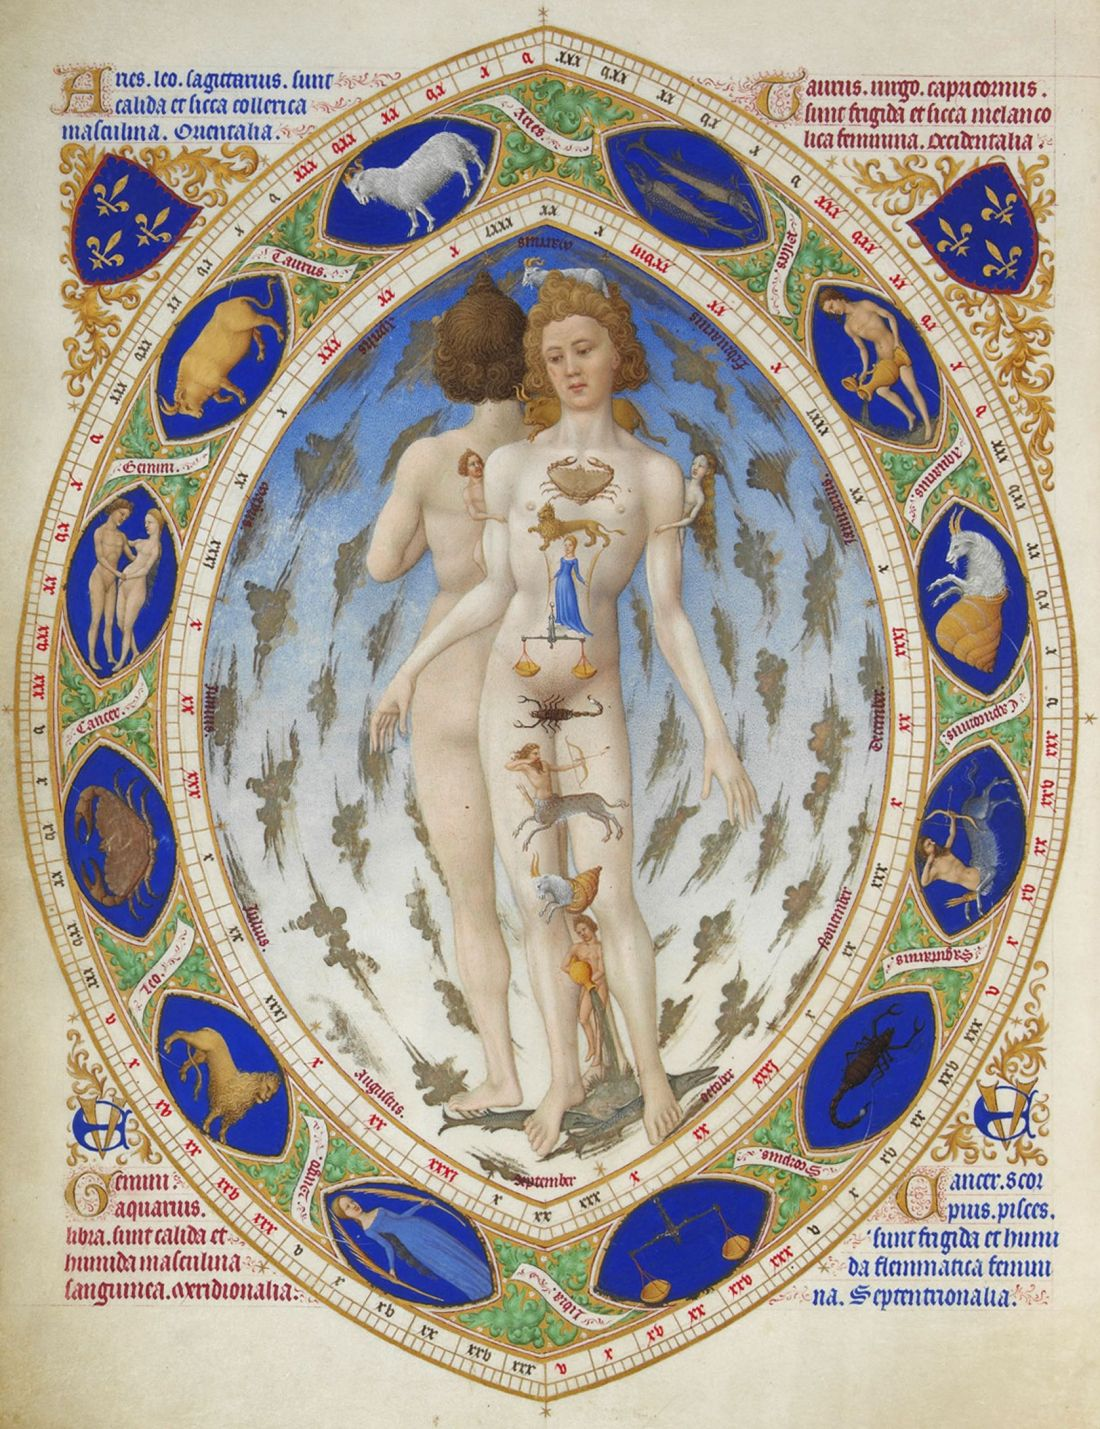 Astrology of the Human Body